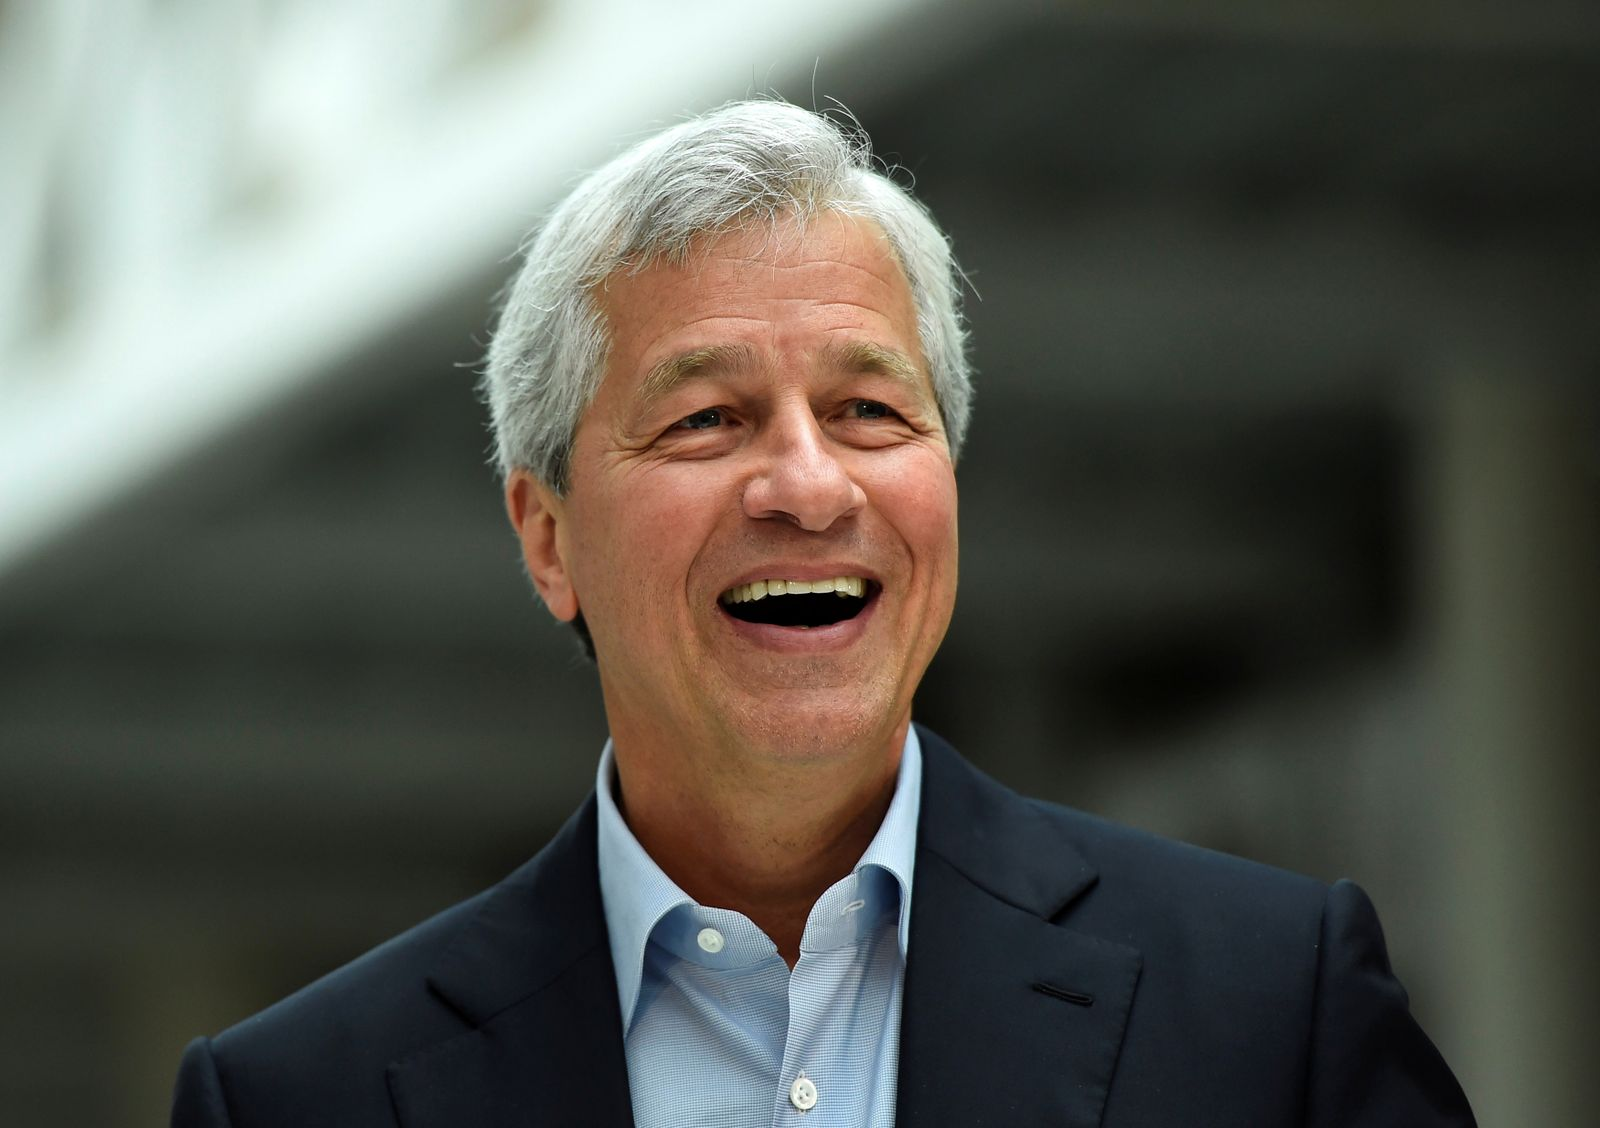 FILE PHOTO: JP Morgan CEO Jamie Dimon speaks at event at JP Morgan's corporate centre in Bournemouth